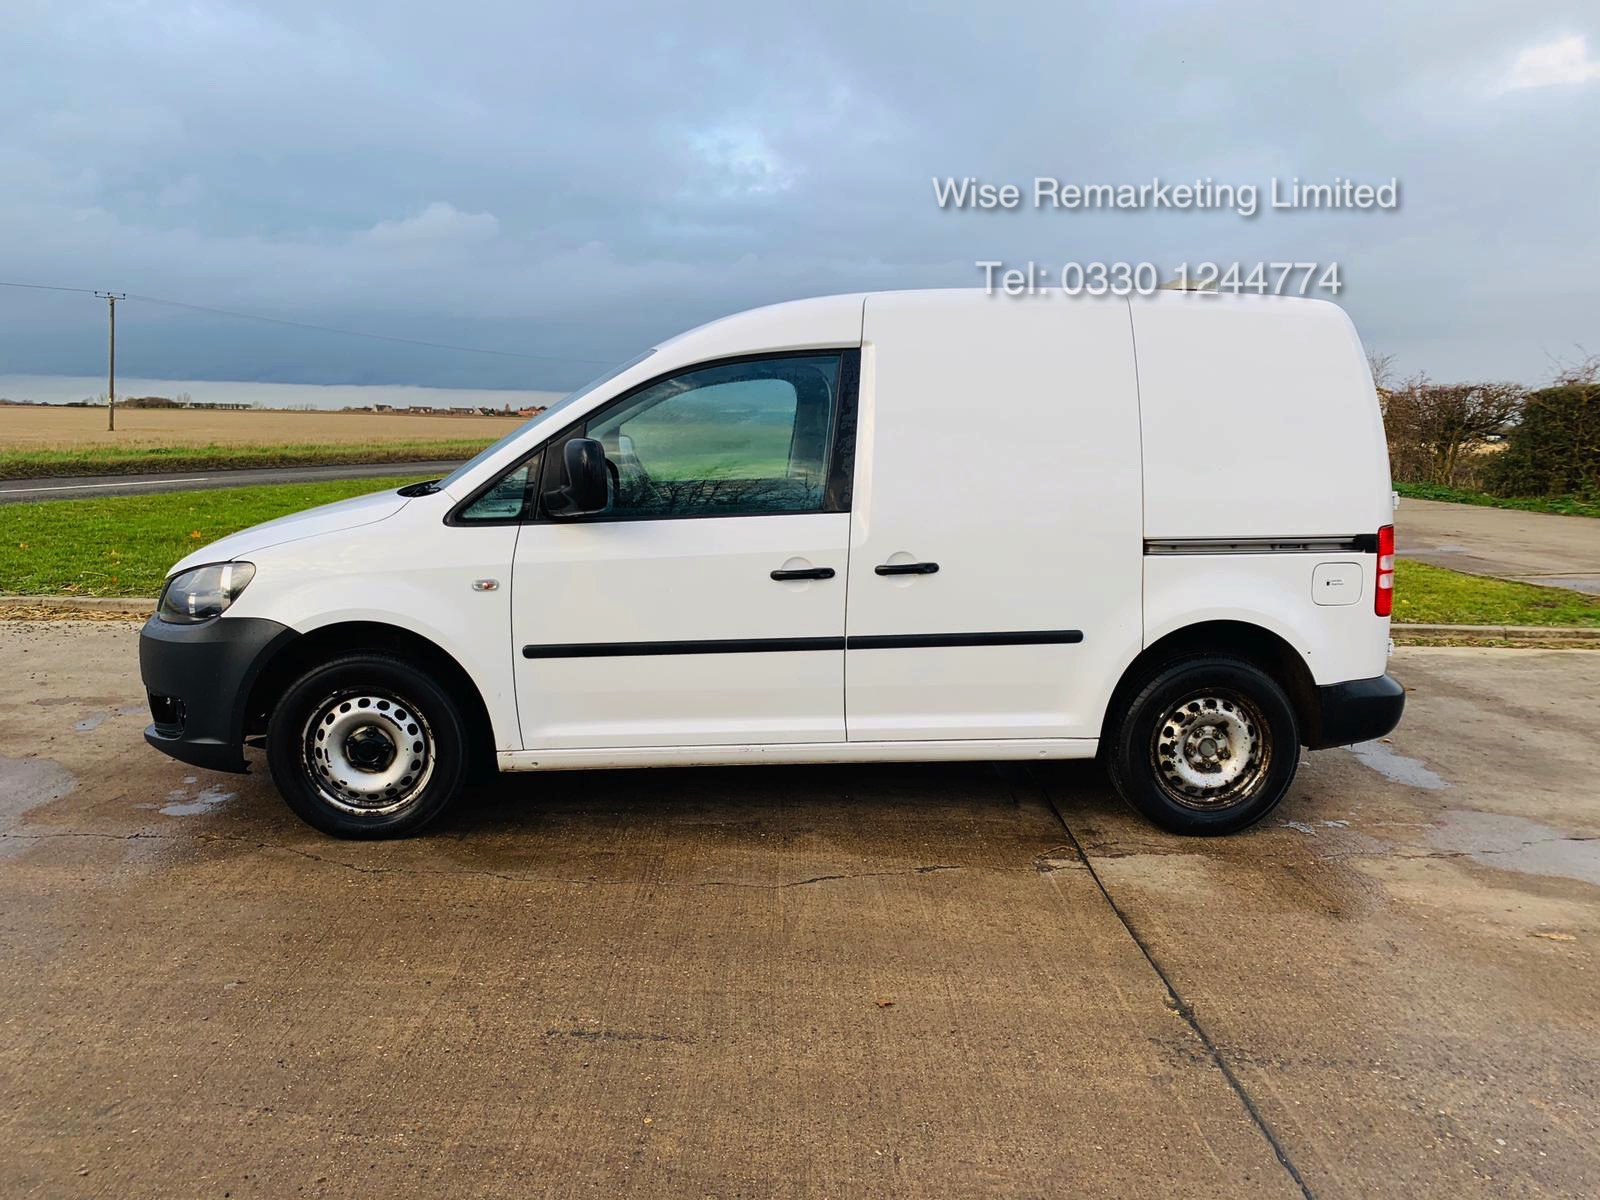 Volkswagen Caddy C20 1.6 TDI - 2012 Model - 1 Keeper From New - Side Loading Door - Ply Lined - Image 4 of 16